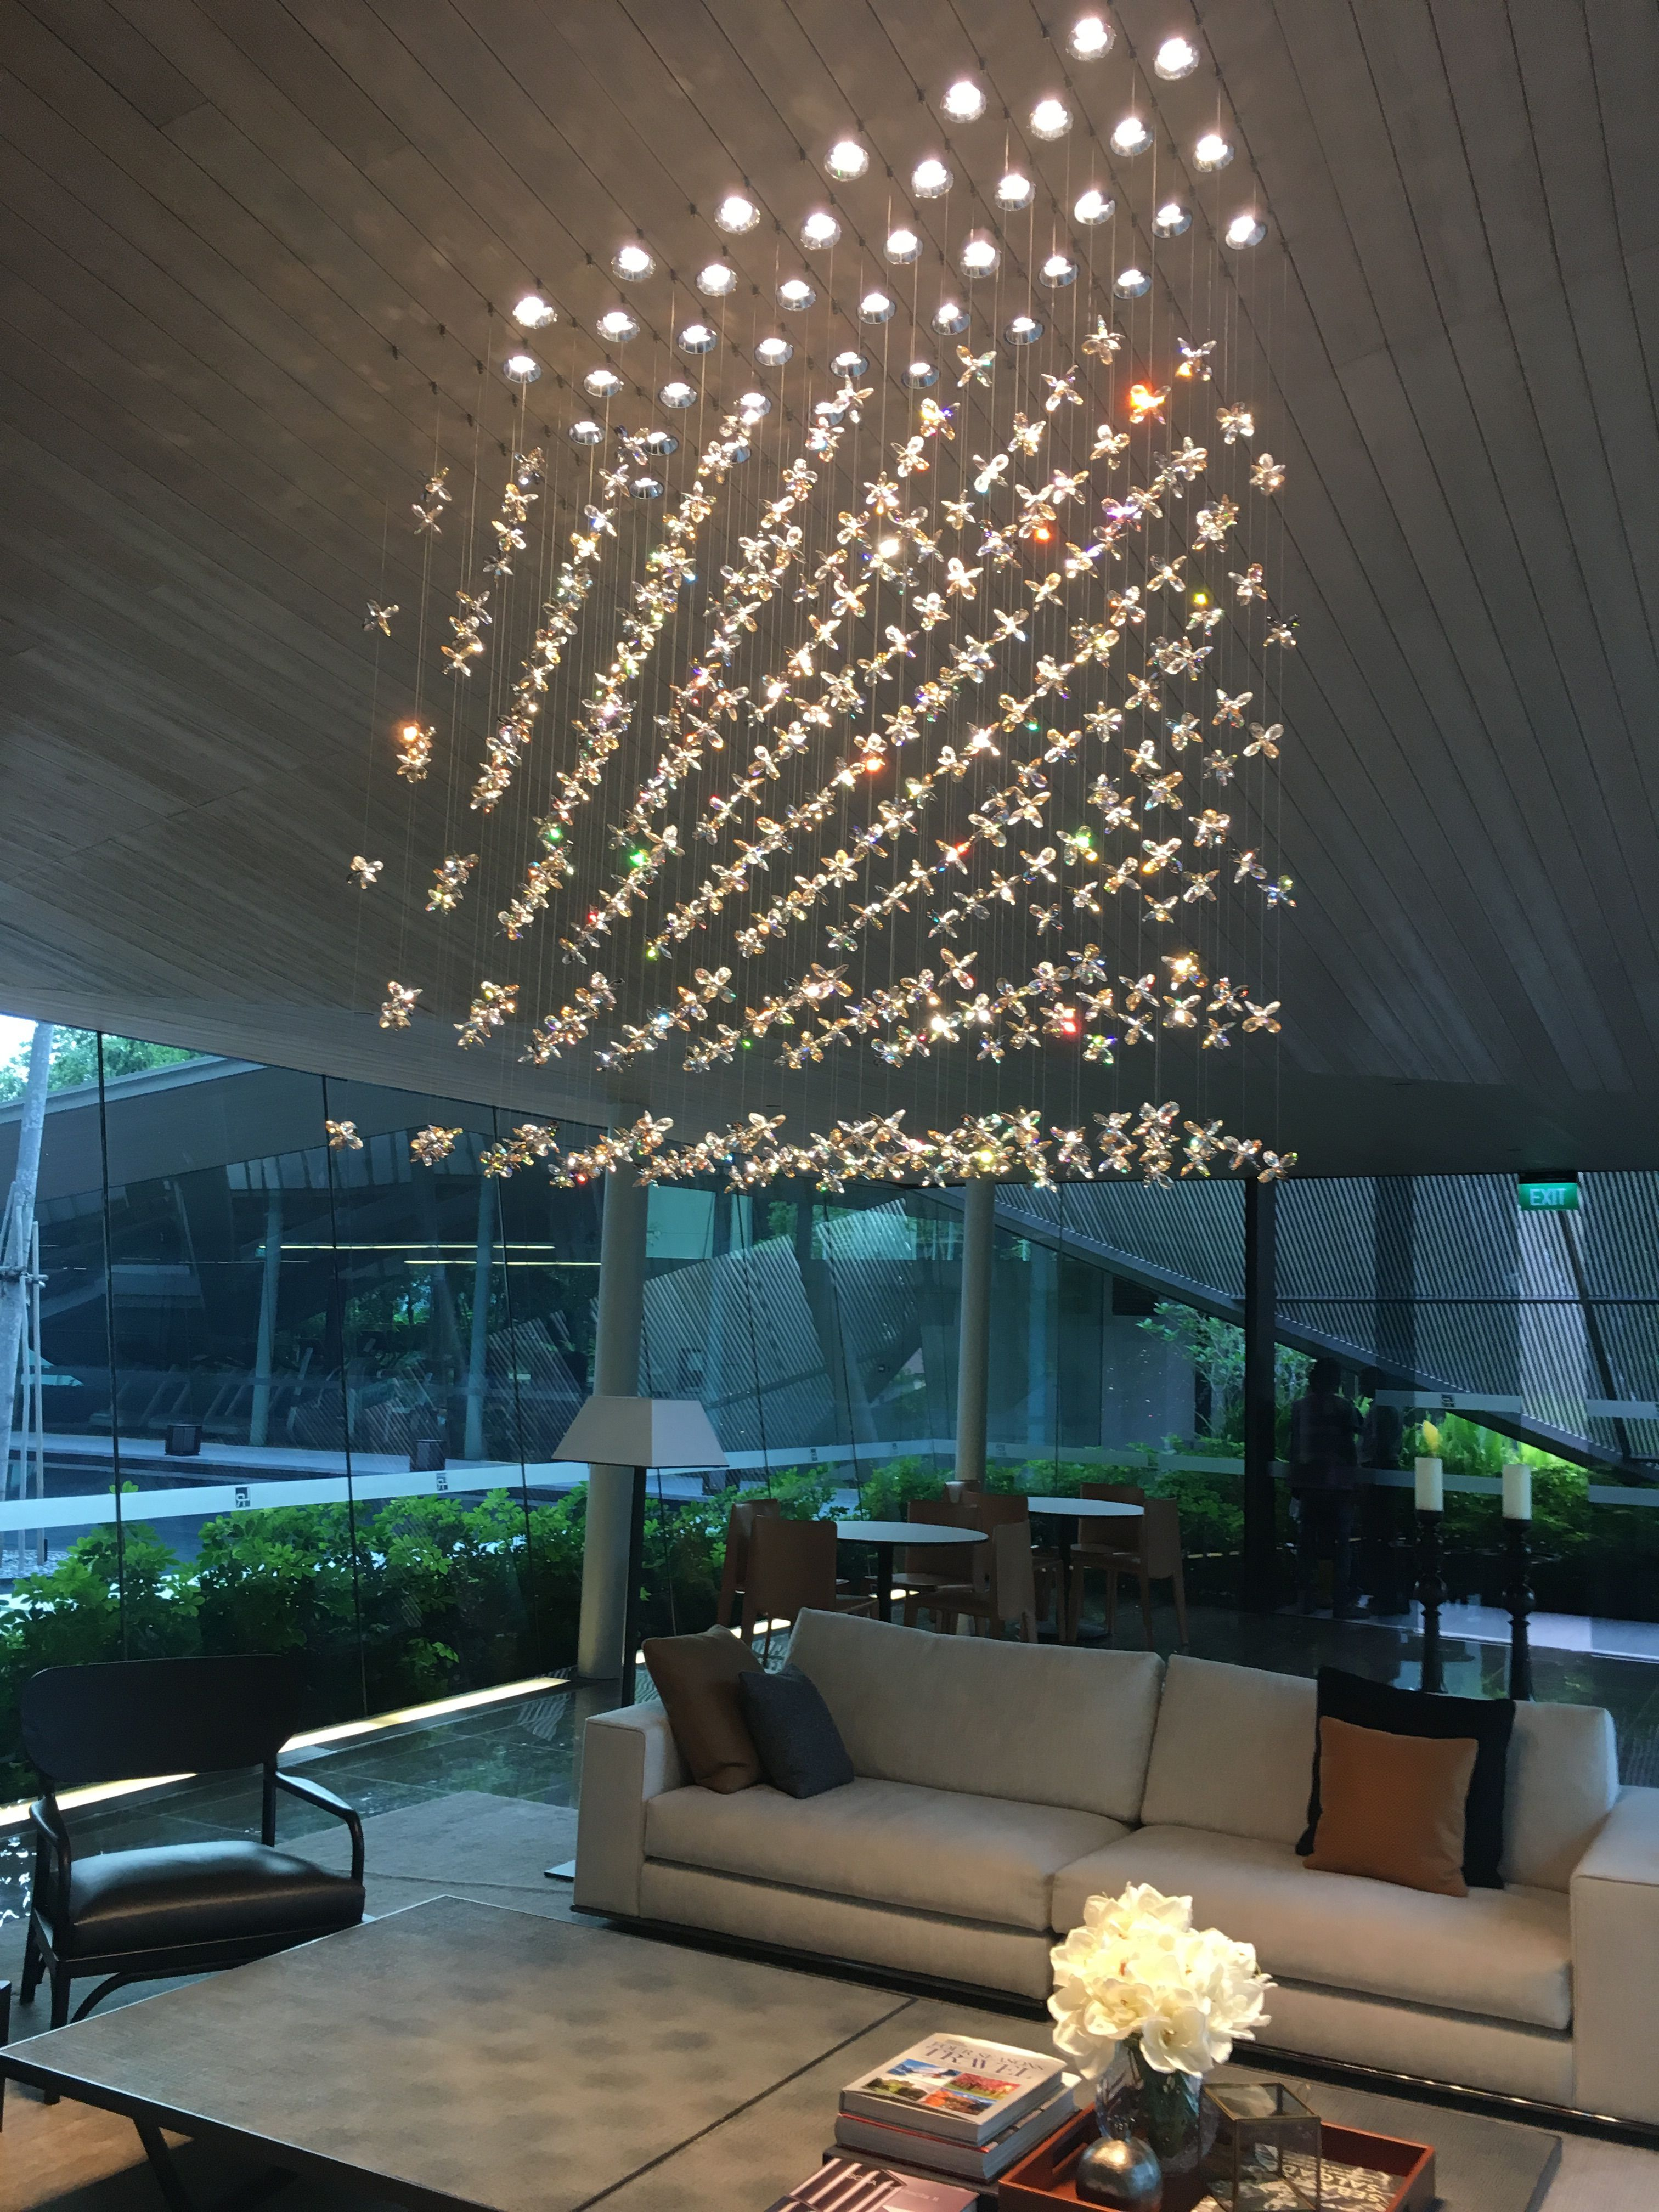 Windfall chandeliers the flower chandelier at leedon residences windfall chandeliers the flower chandelier at leedon residences clubhouse arubaitofo Choice Image